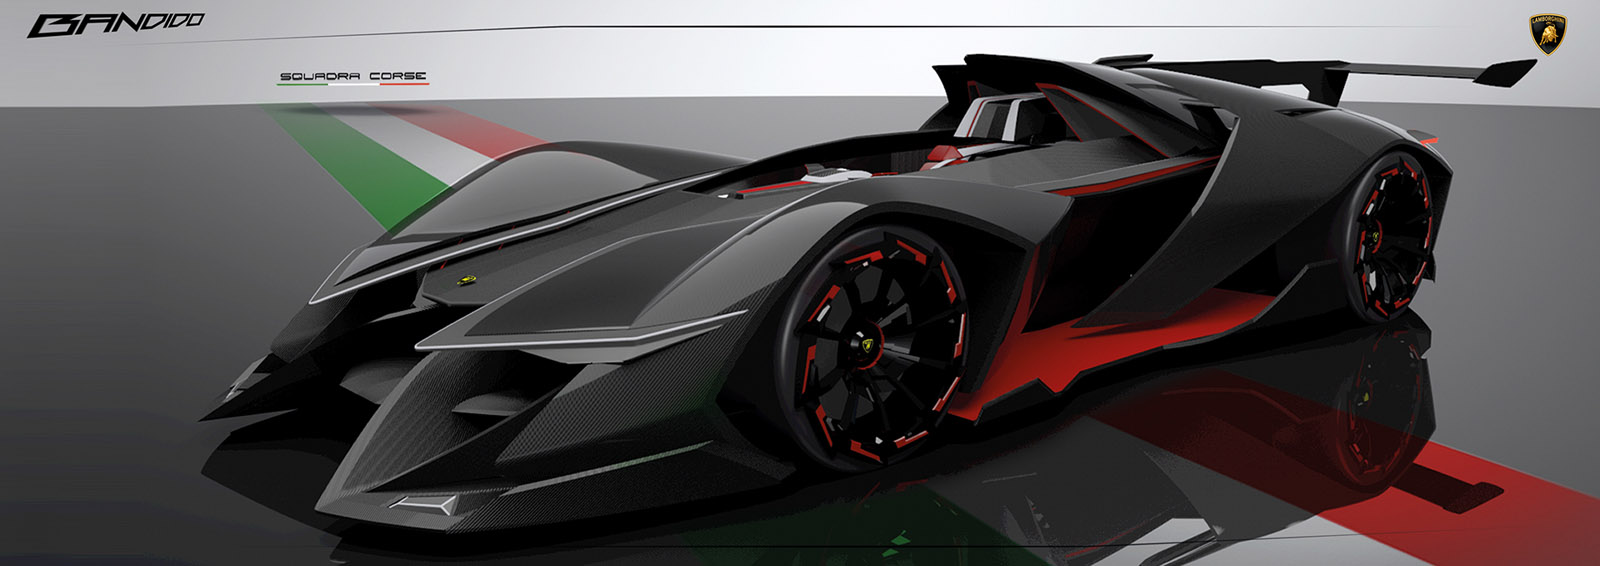 car teases update seater automotive hybrid one new unveiled forum lamborghini international scene price asterion